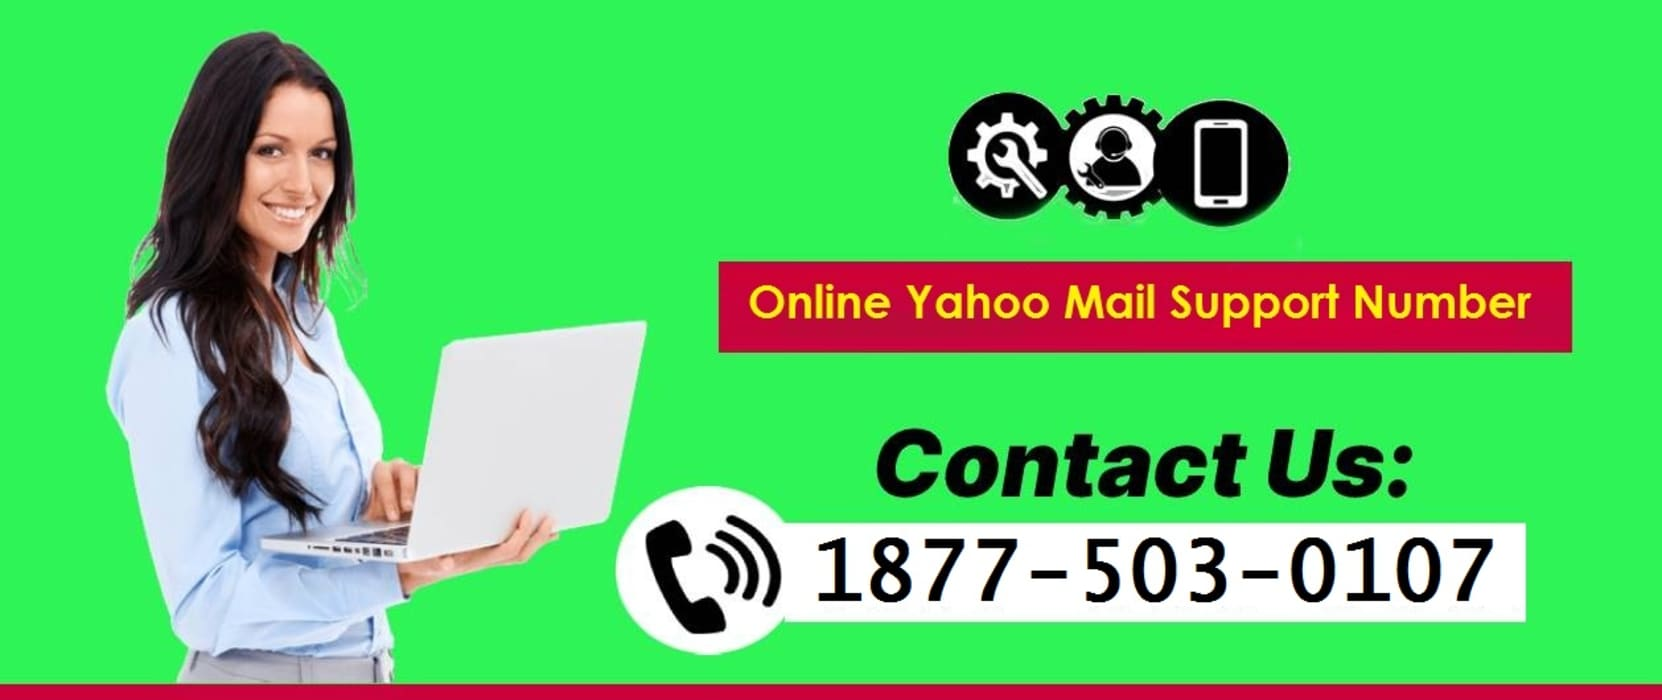 Online Yahoo Mail Support Number 1877-503-0107 توسط Yahoo Mail Support Number 1877-503-0107 کلاسیک